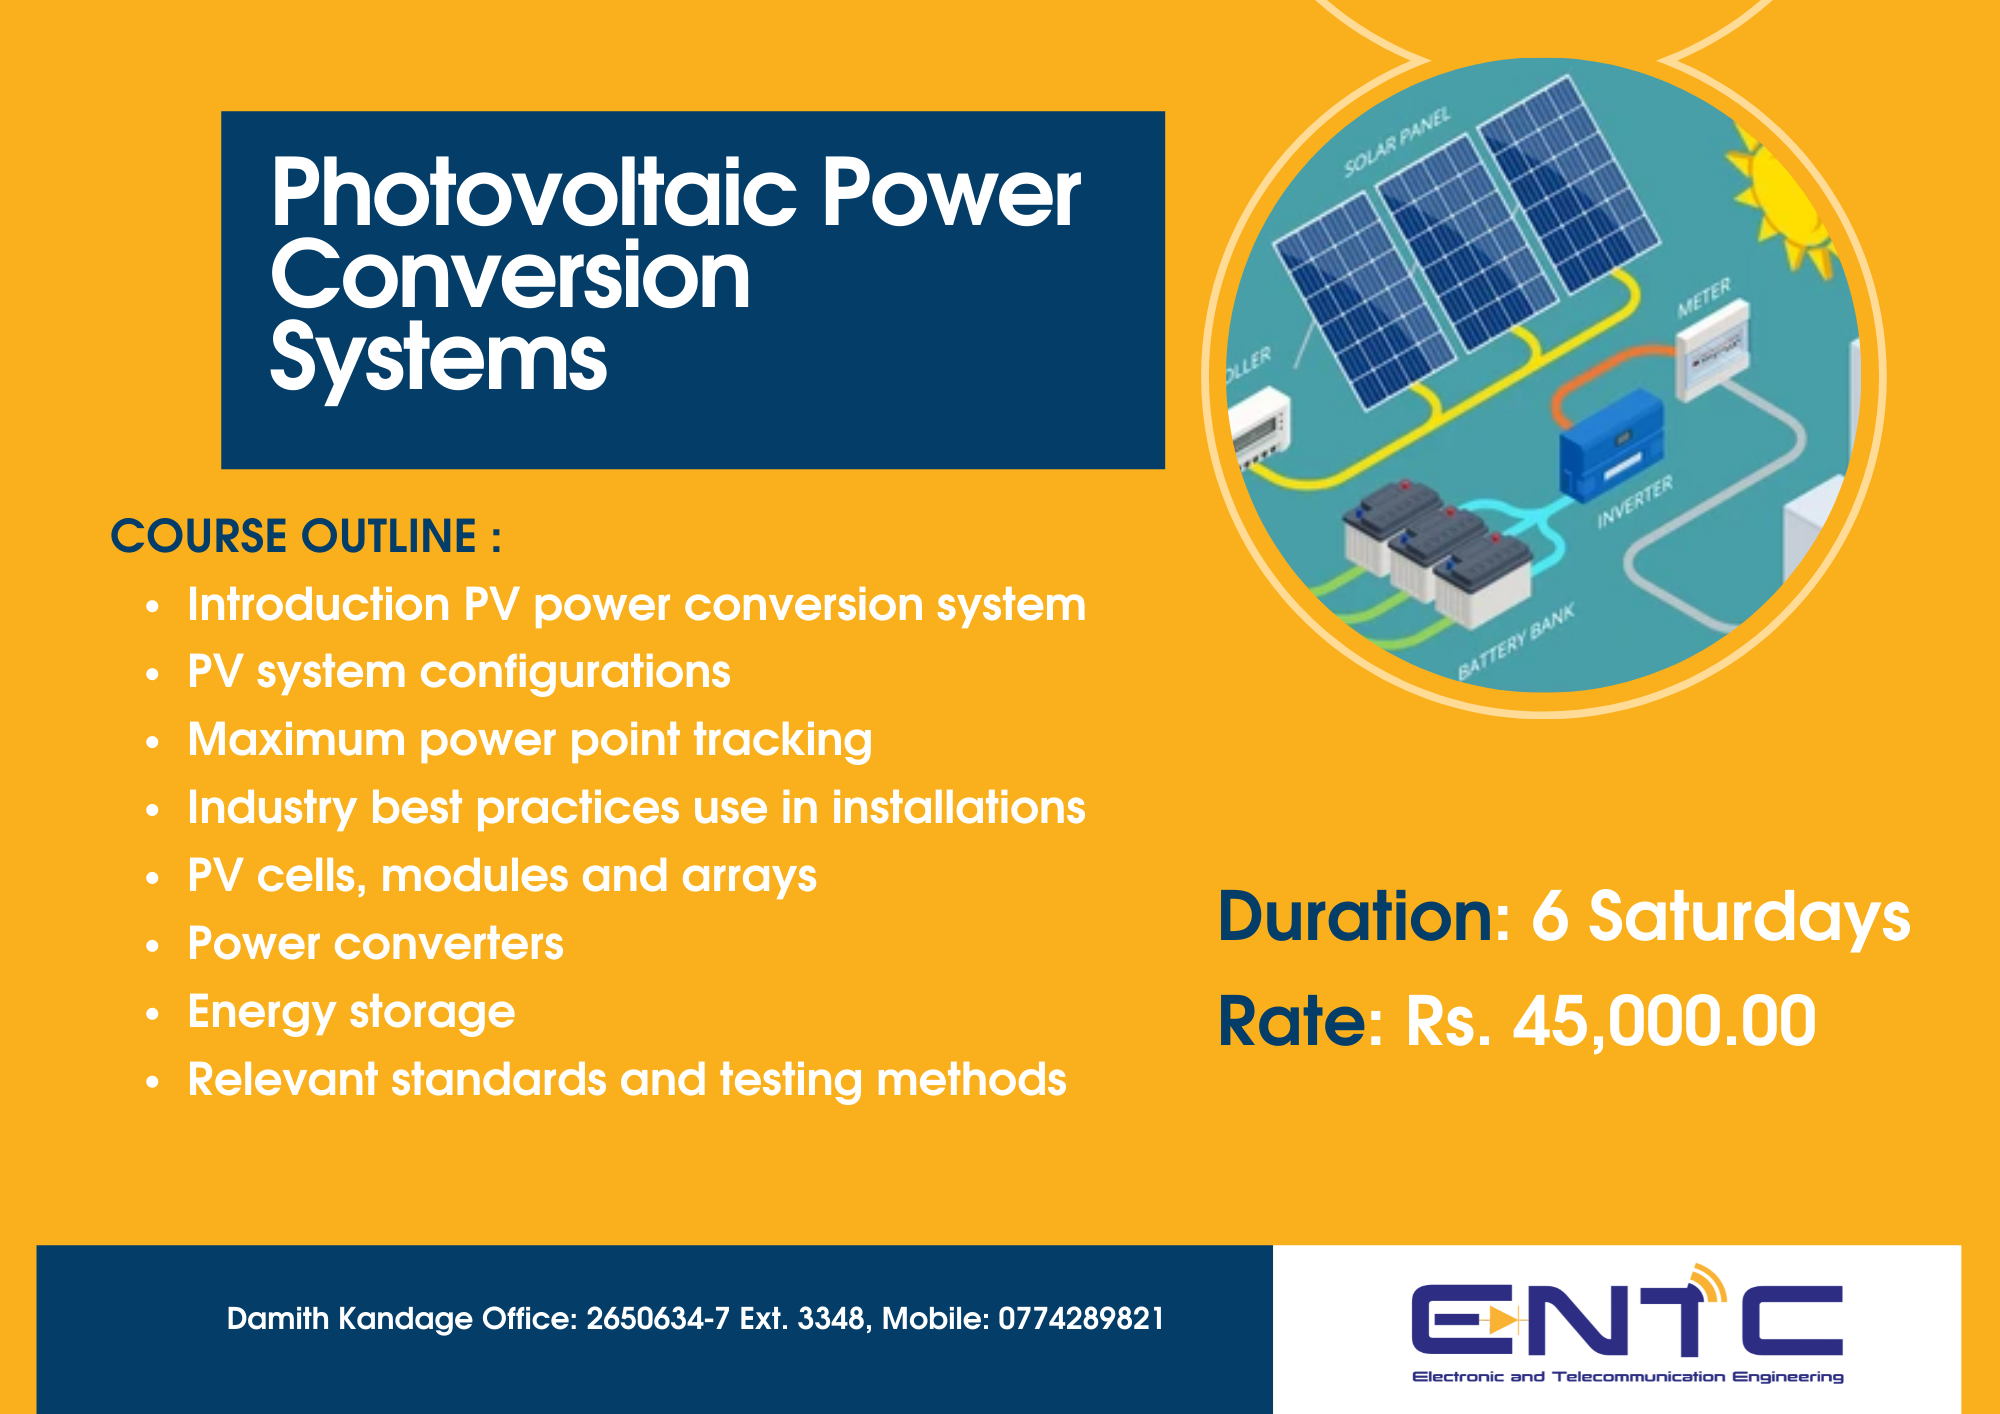 Photovoltaic Power Conversion Systems